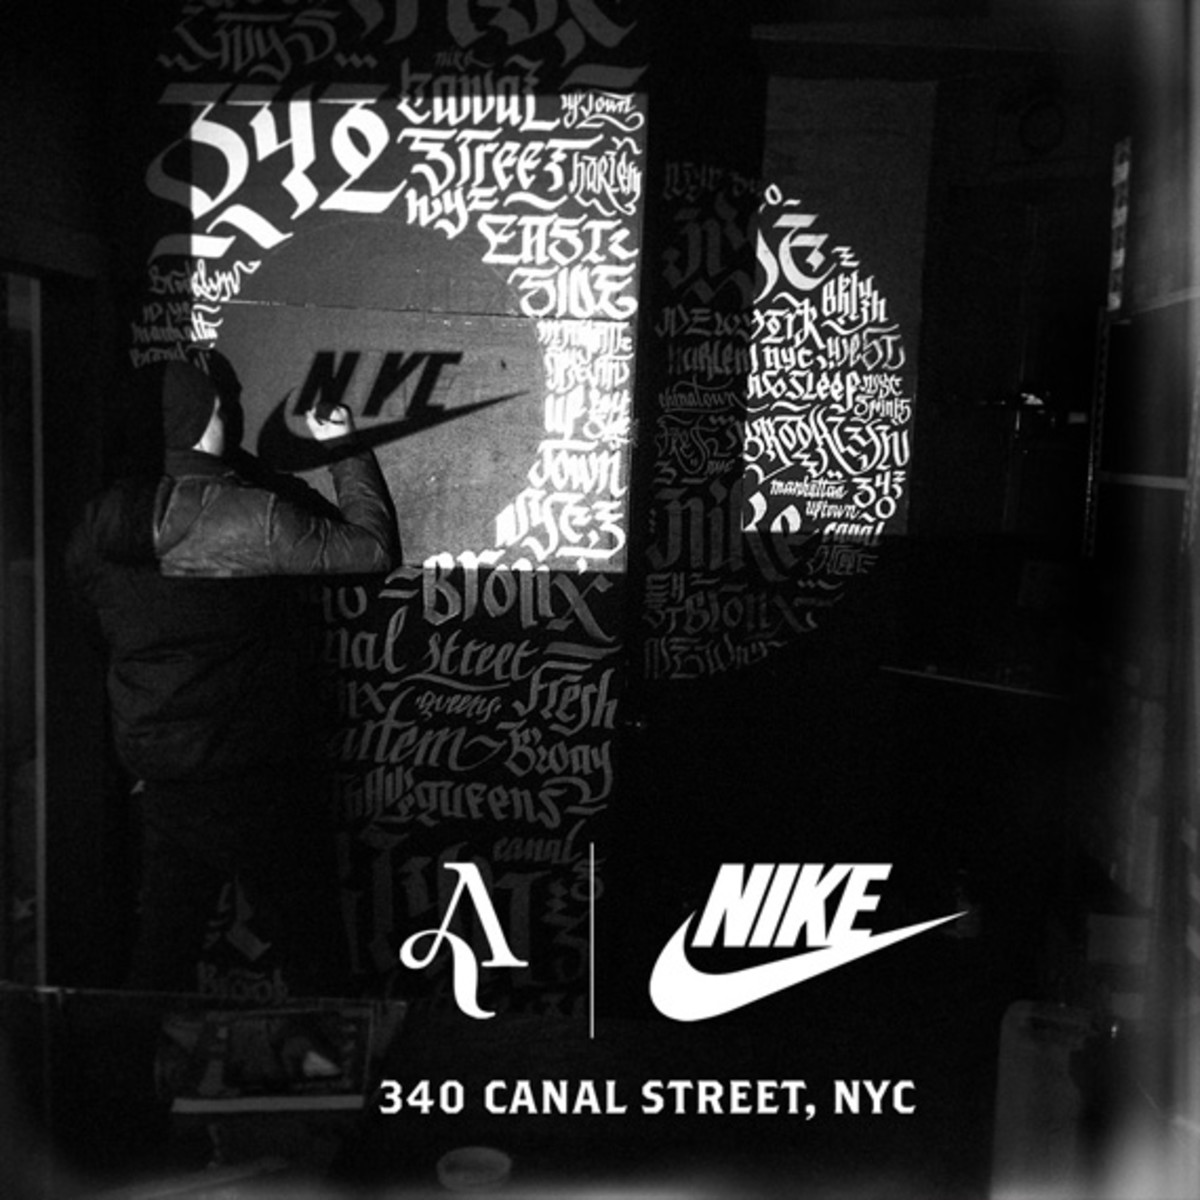 aerosyn-lex-for-nike-340-canal-street-pop-up-shop-closing-exhibition-01a